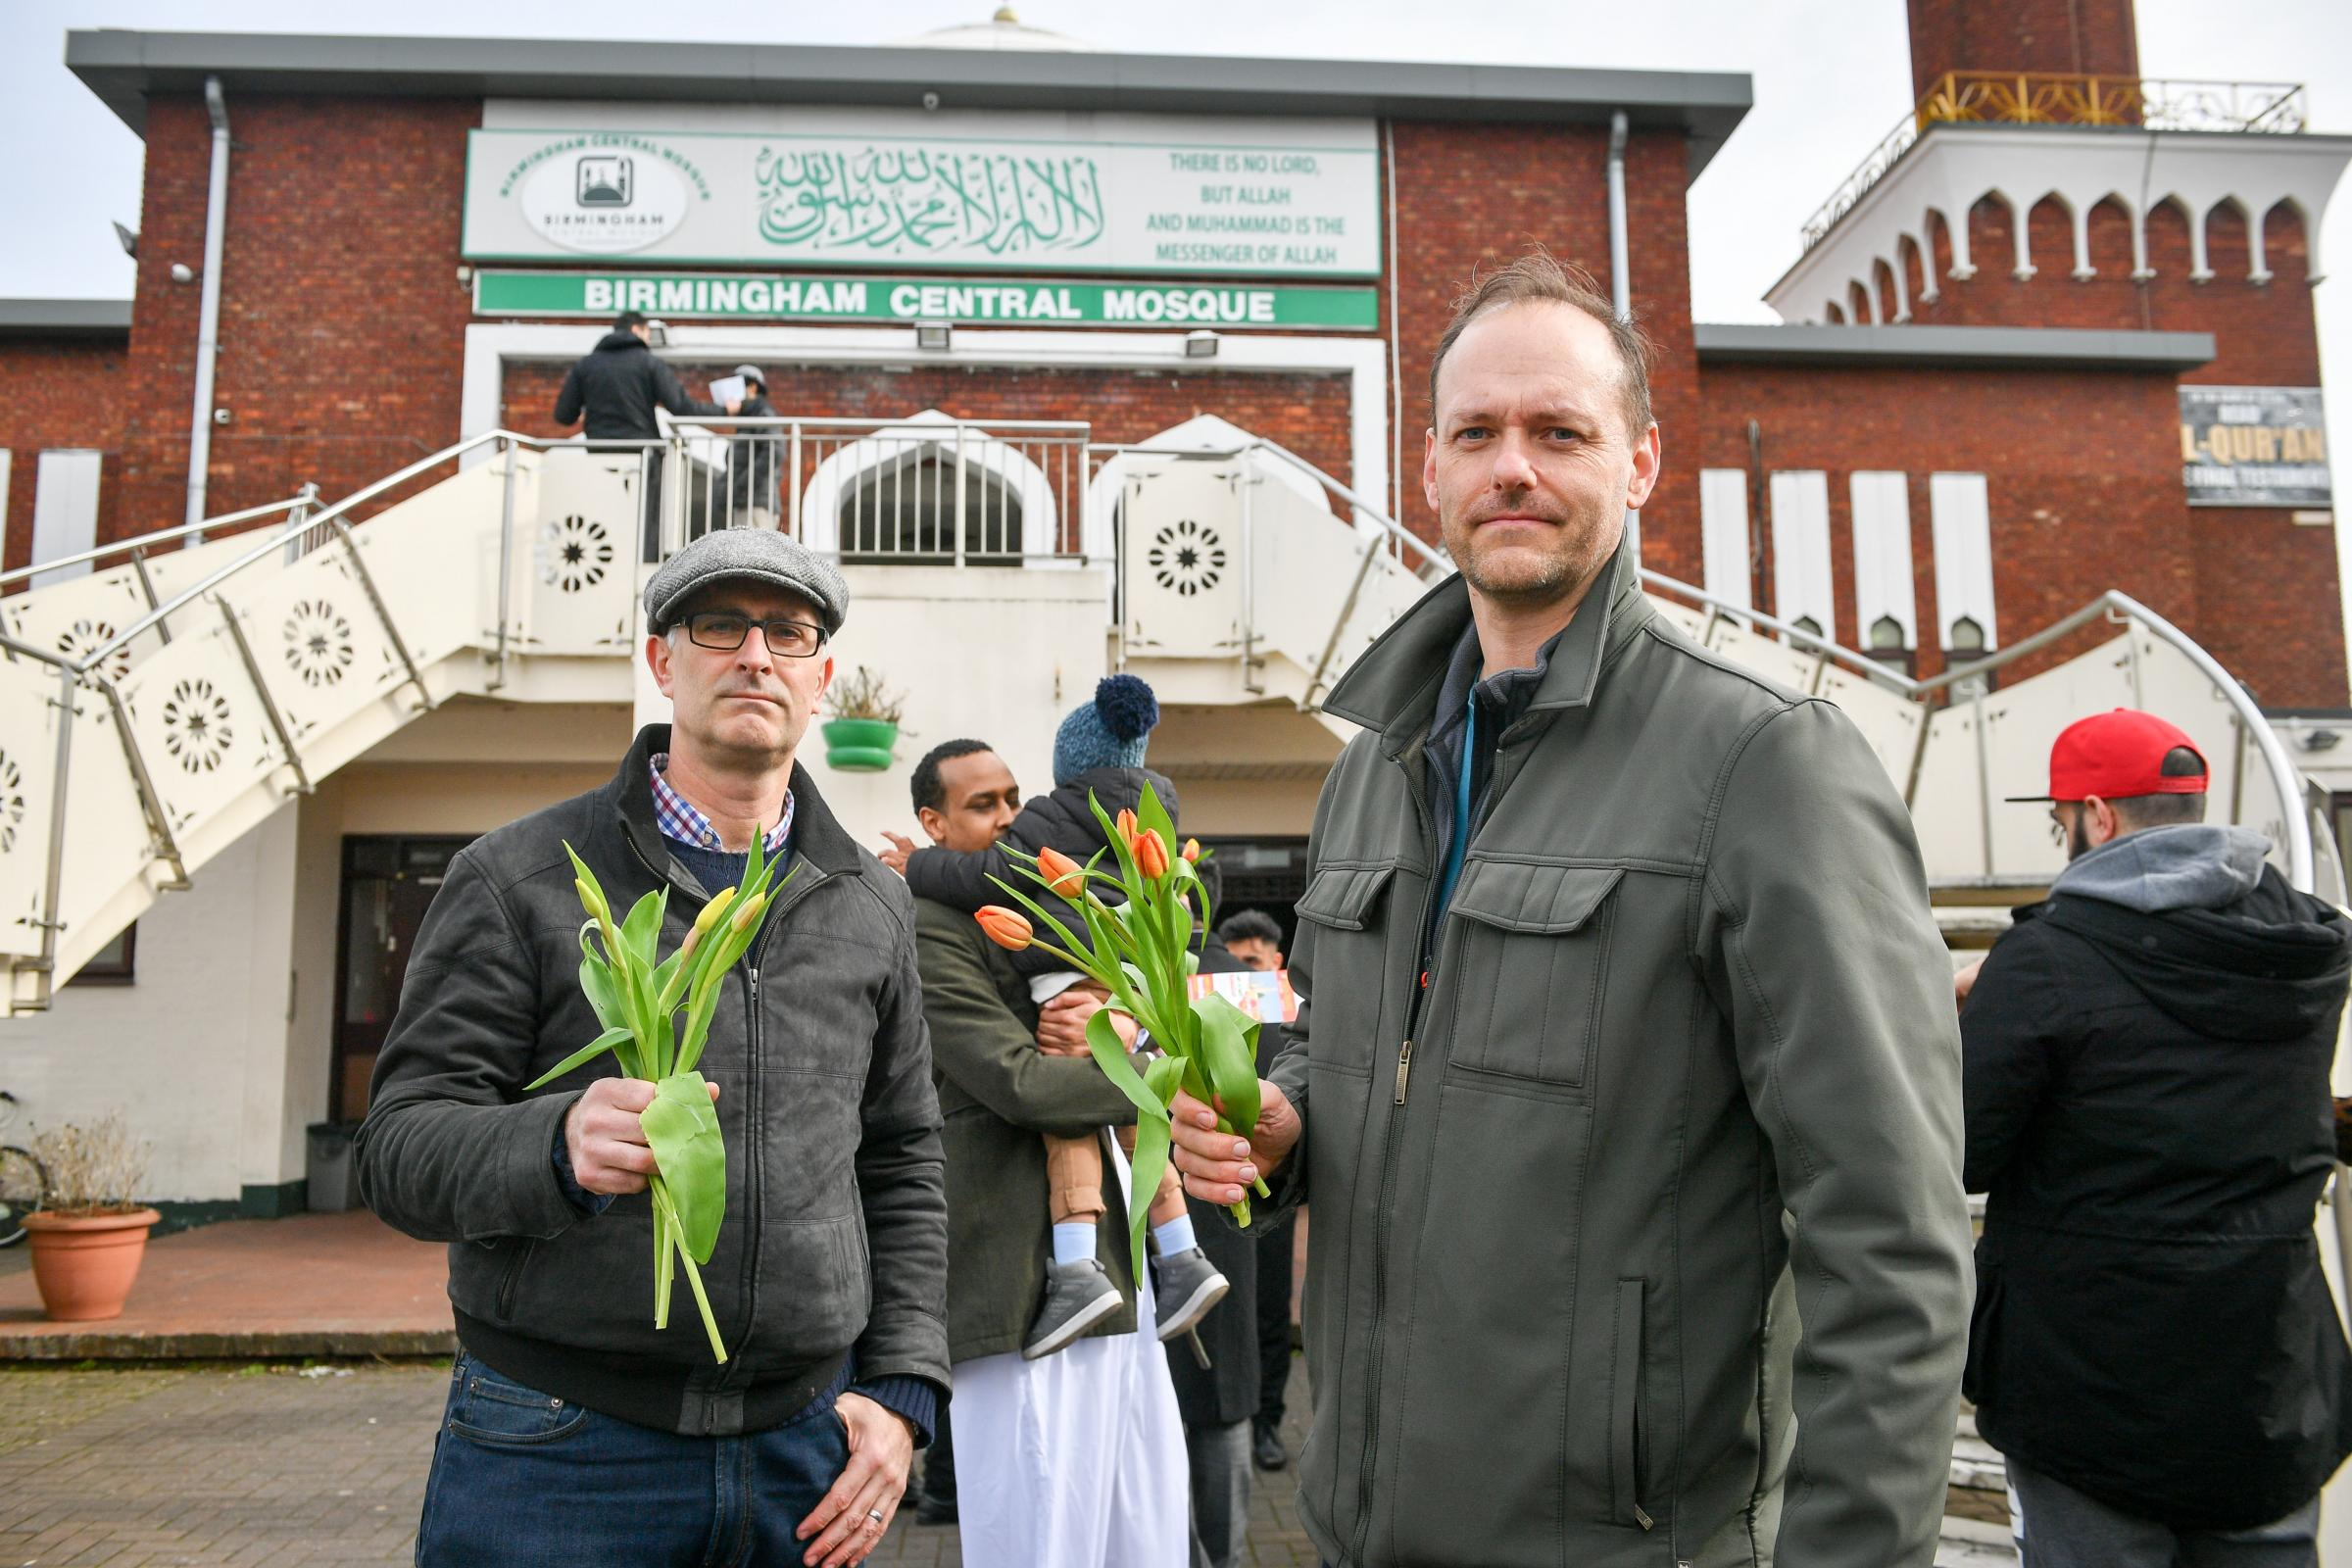 Christians James Lynch, left, and Marcus Kapers from Riverside Church, who are handing out flowers to Muslims as they leave Birmingham Central Mosque after the attack on the Mosque in Christchurch, New Zealand.